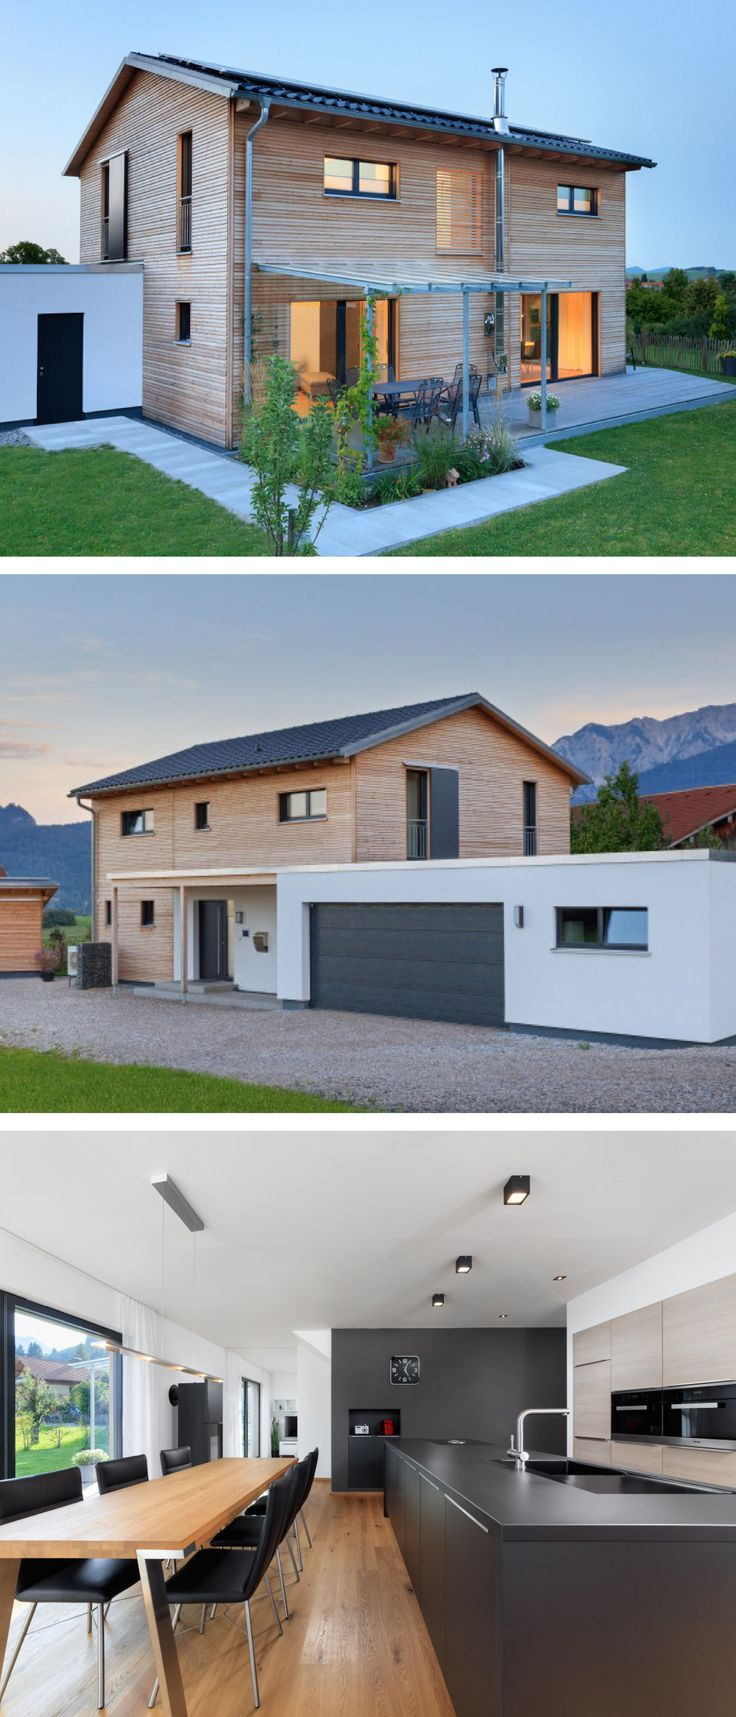 Best Modern Detached House With Garage Pitched Roof 400 x 300